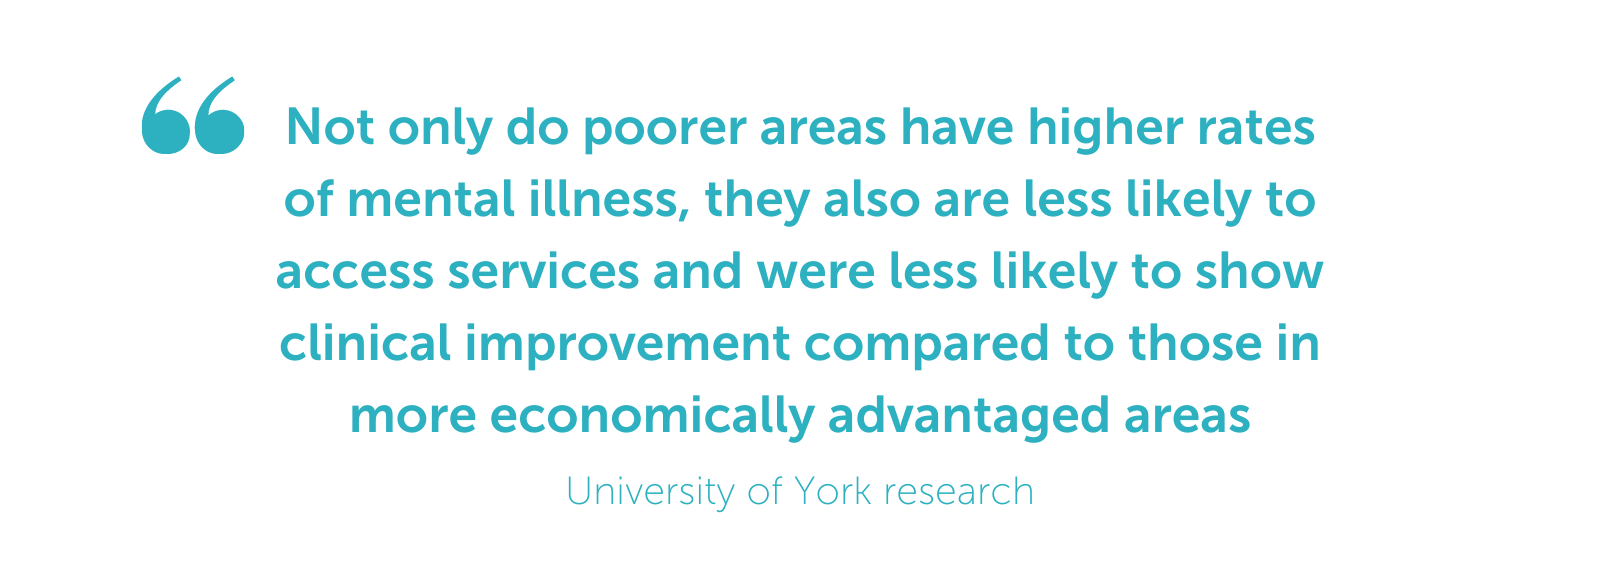 Not only do poorer areas have higher rates of mental illness, they also are less likely to access services and were less likely to hsow clinical improvement compared to those in more economically advantaged areas